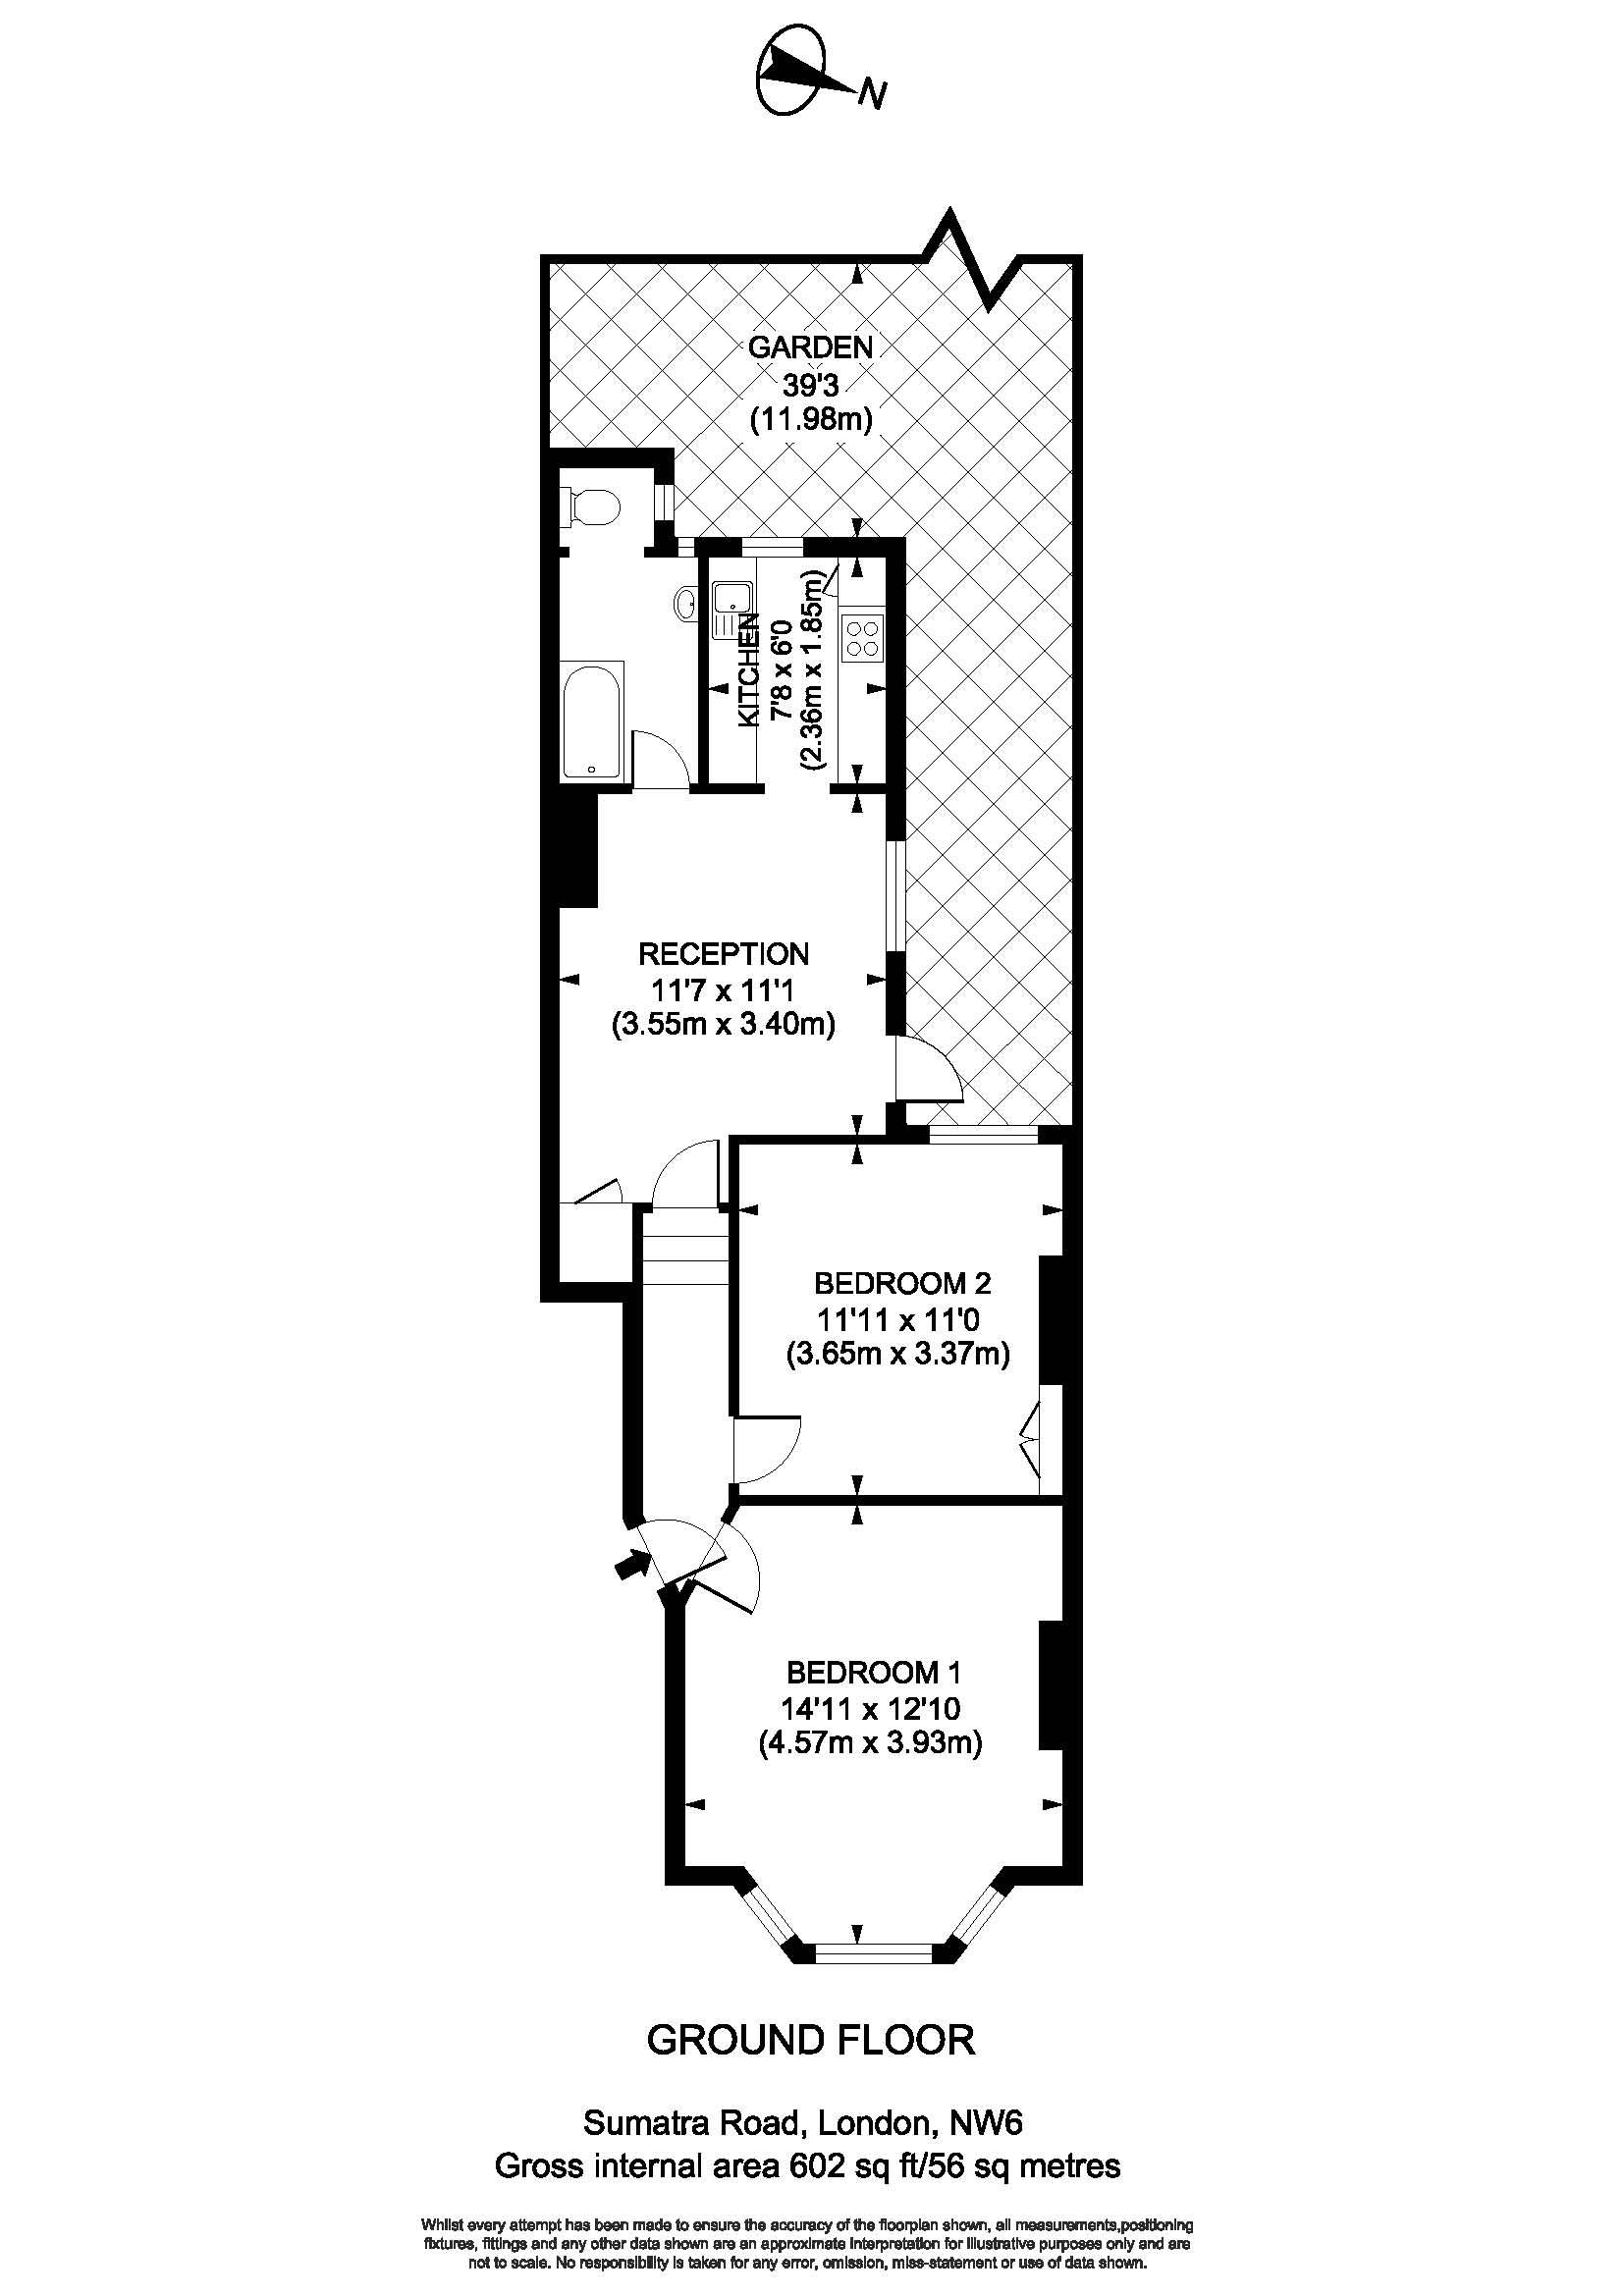 43 Sumatra Road - Floorplan